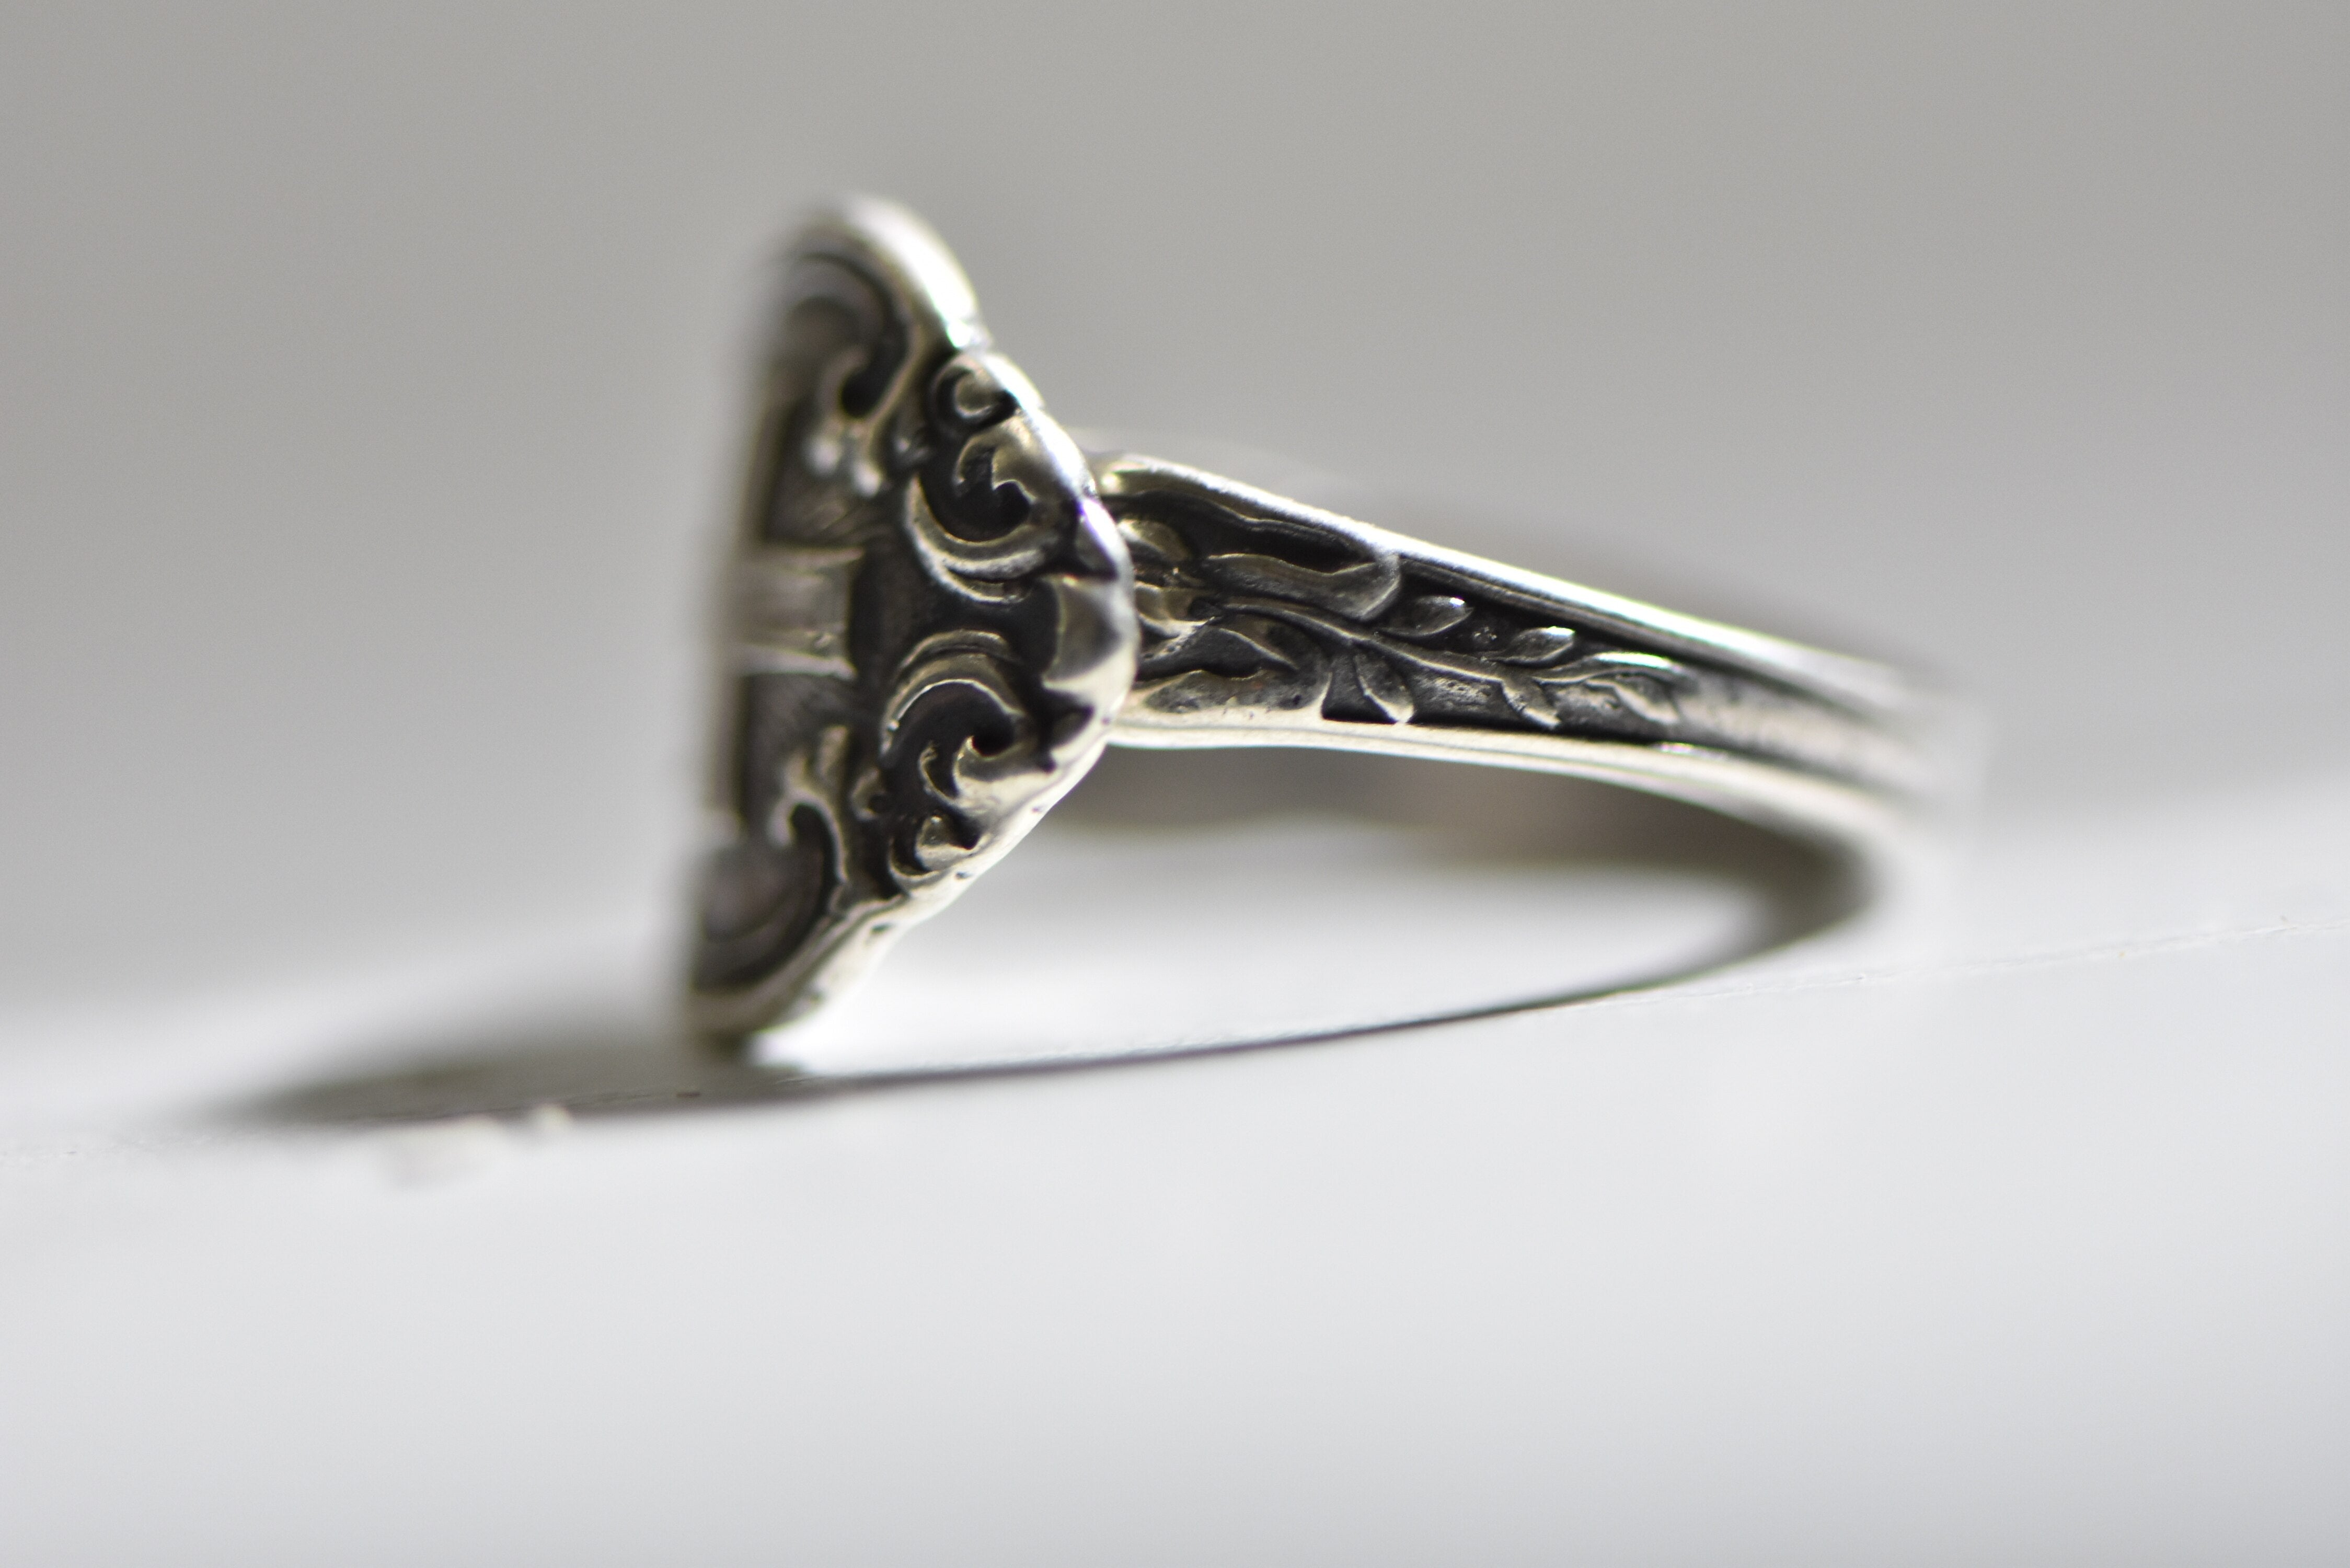 Spoon ring fox band floral sterling silver women girls size 7.25